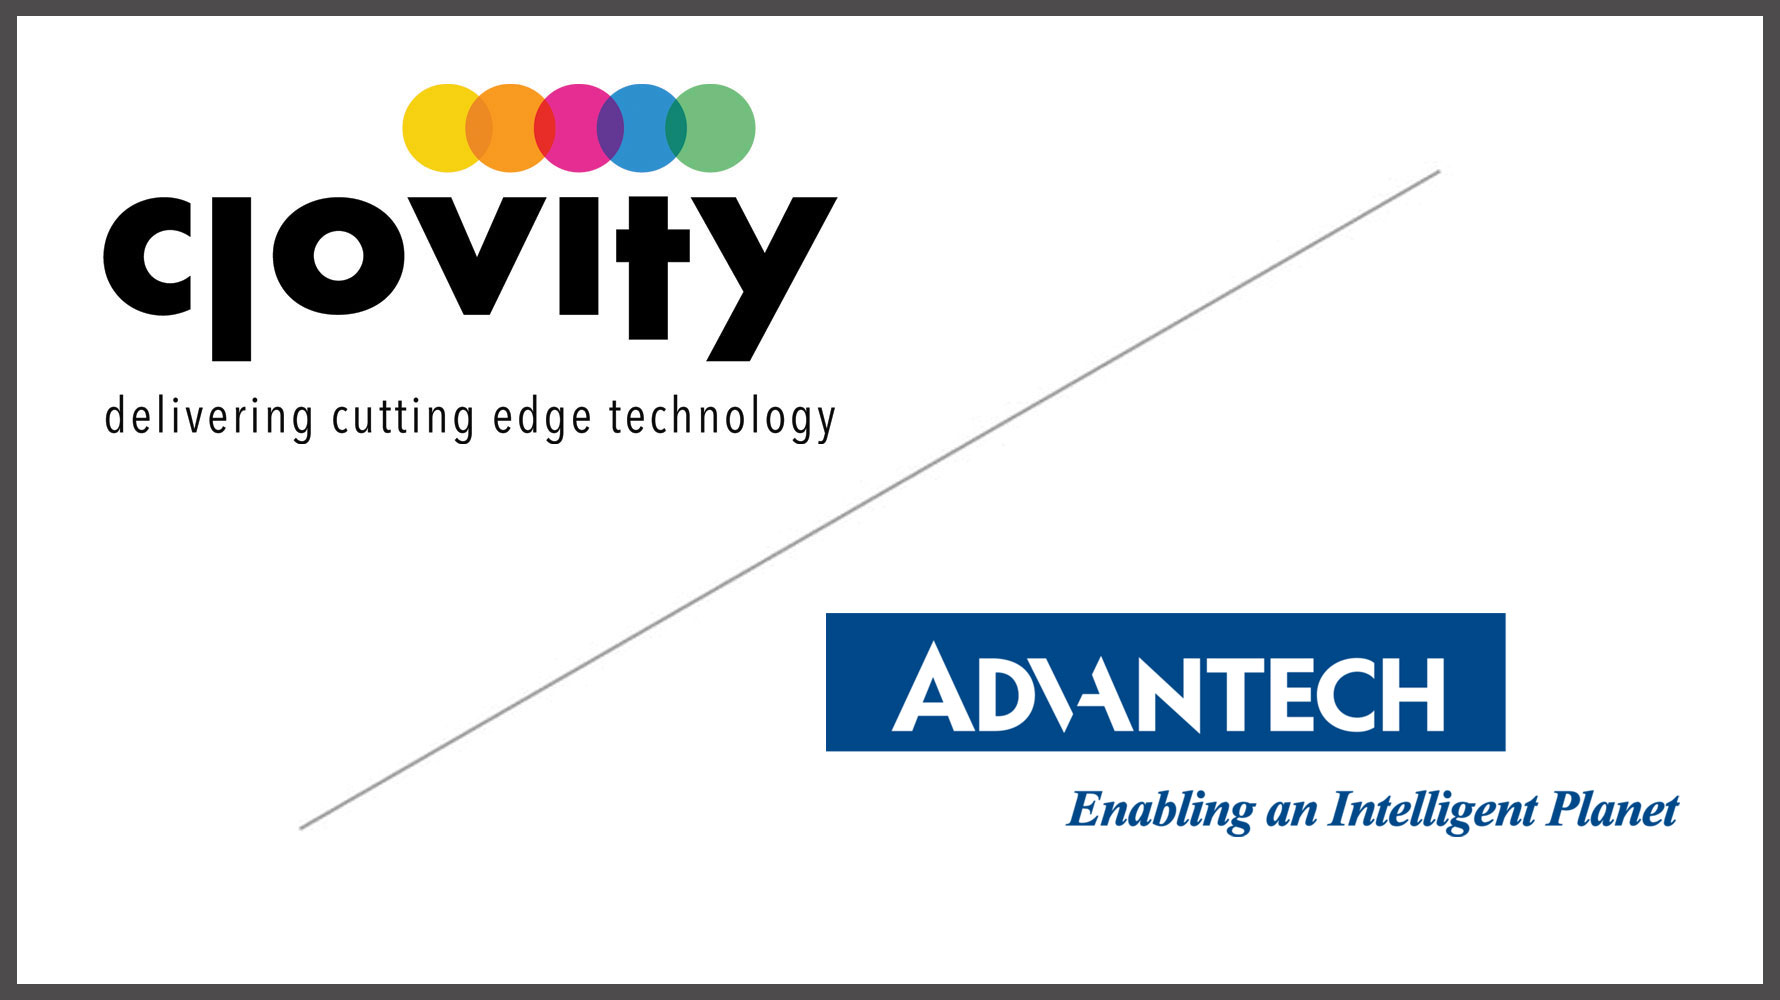 Advantech and Clovity Partner to Create the next Echelon of IoT Deployments for Enterprises in the Healthcare, Industrial, and Smart City Industries